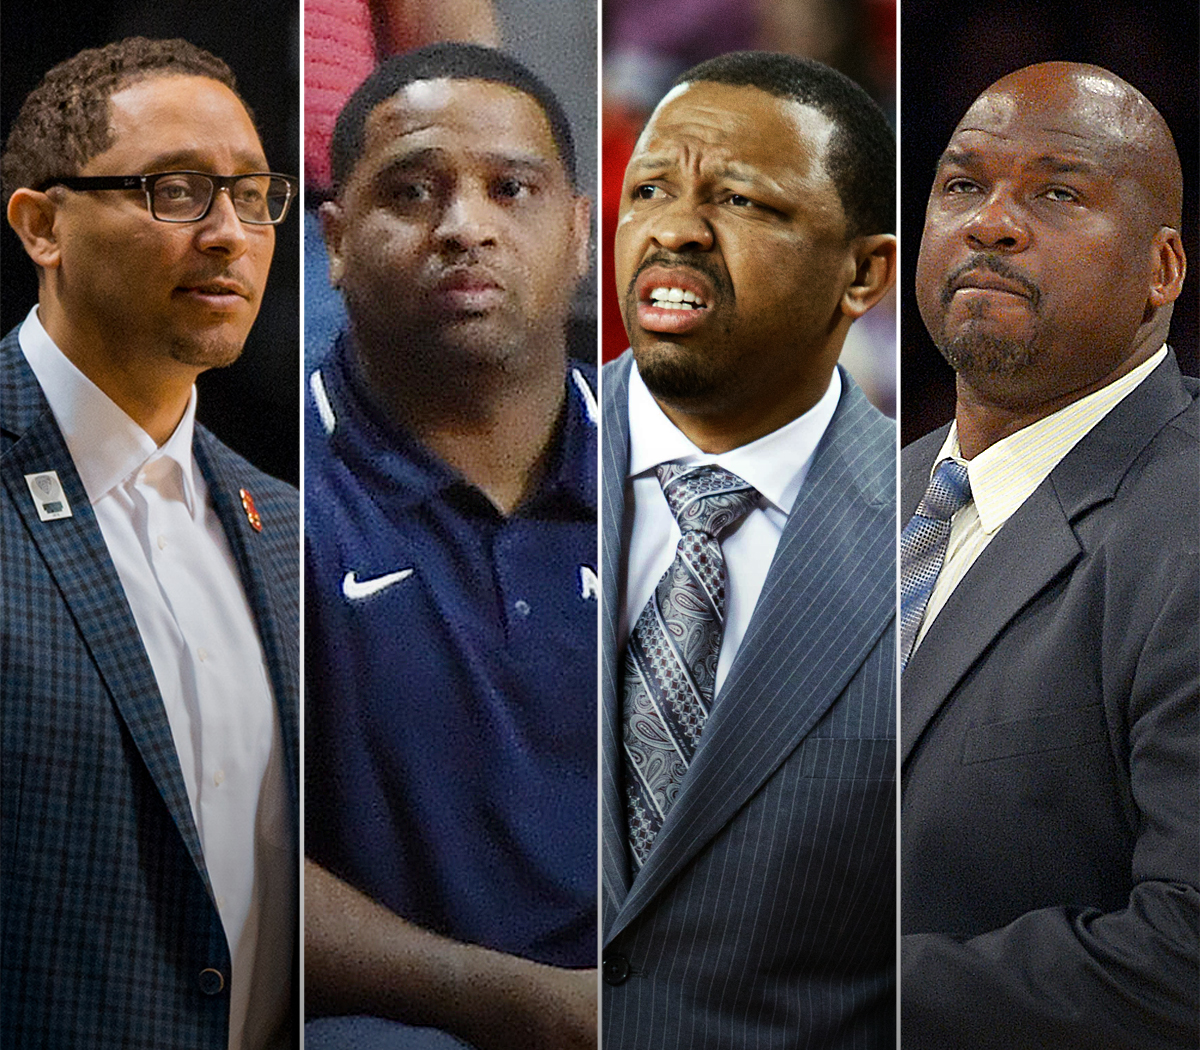 4 NCAA Basketball Coaches Adidas Executive Charged in Bribe